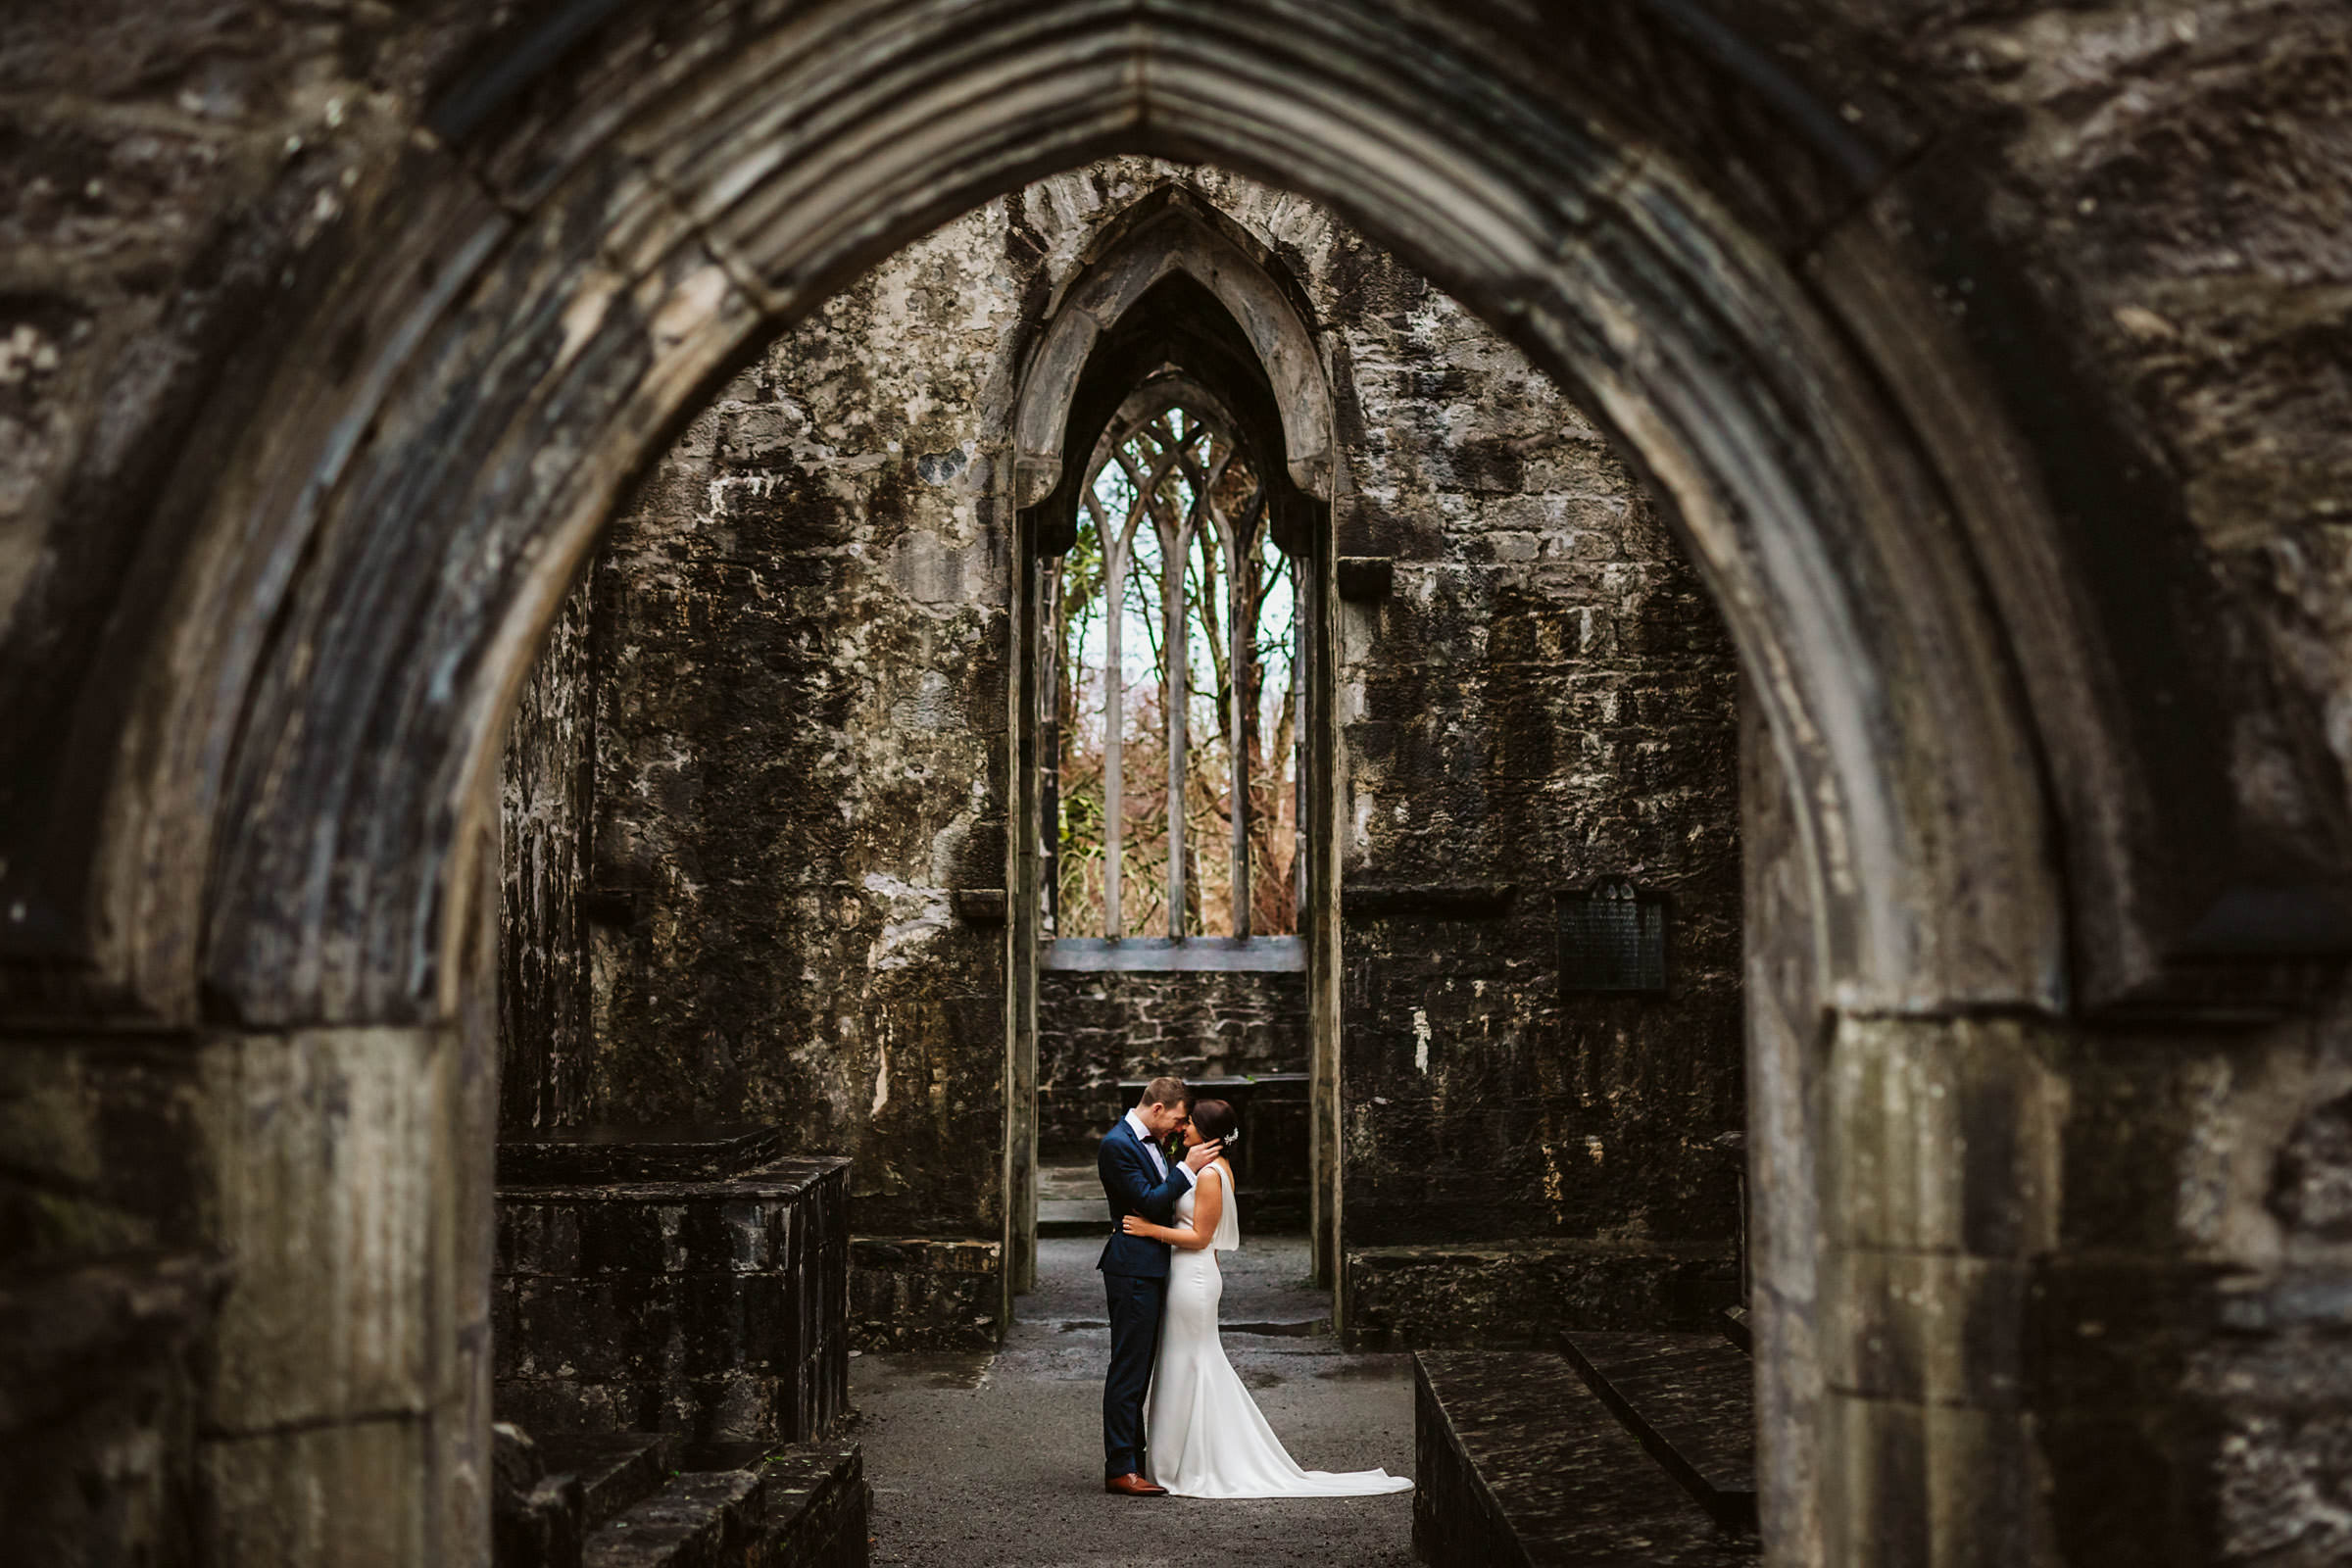 bride and groom portrait in historic venue, ireland- photo by Lima Conlon Photography